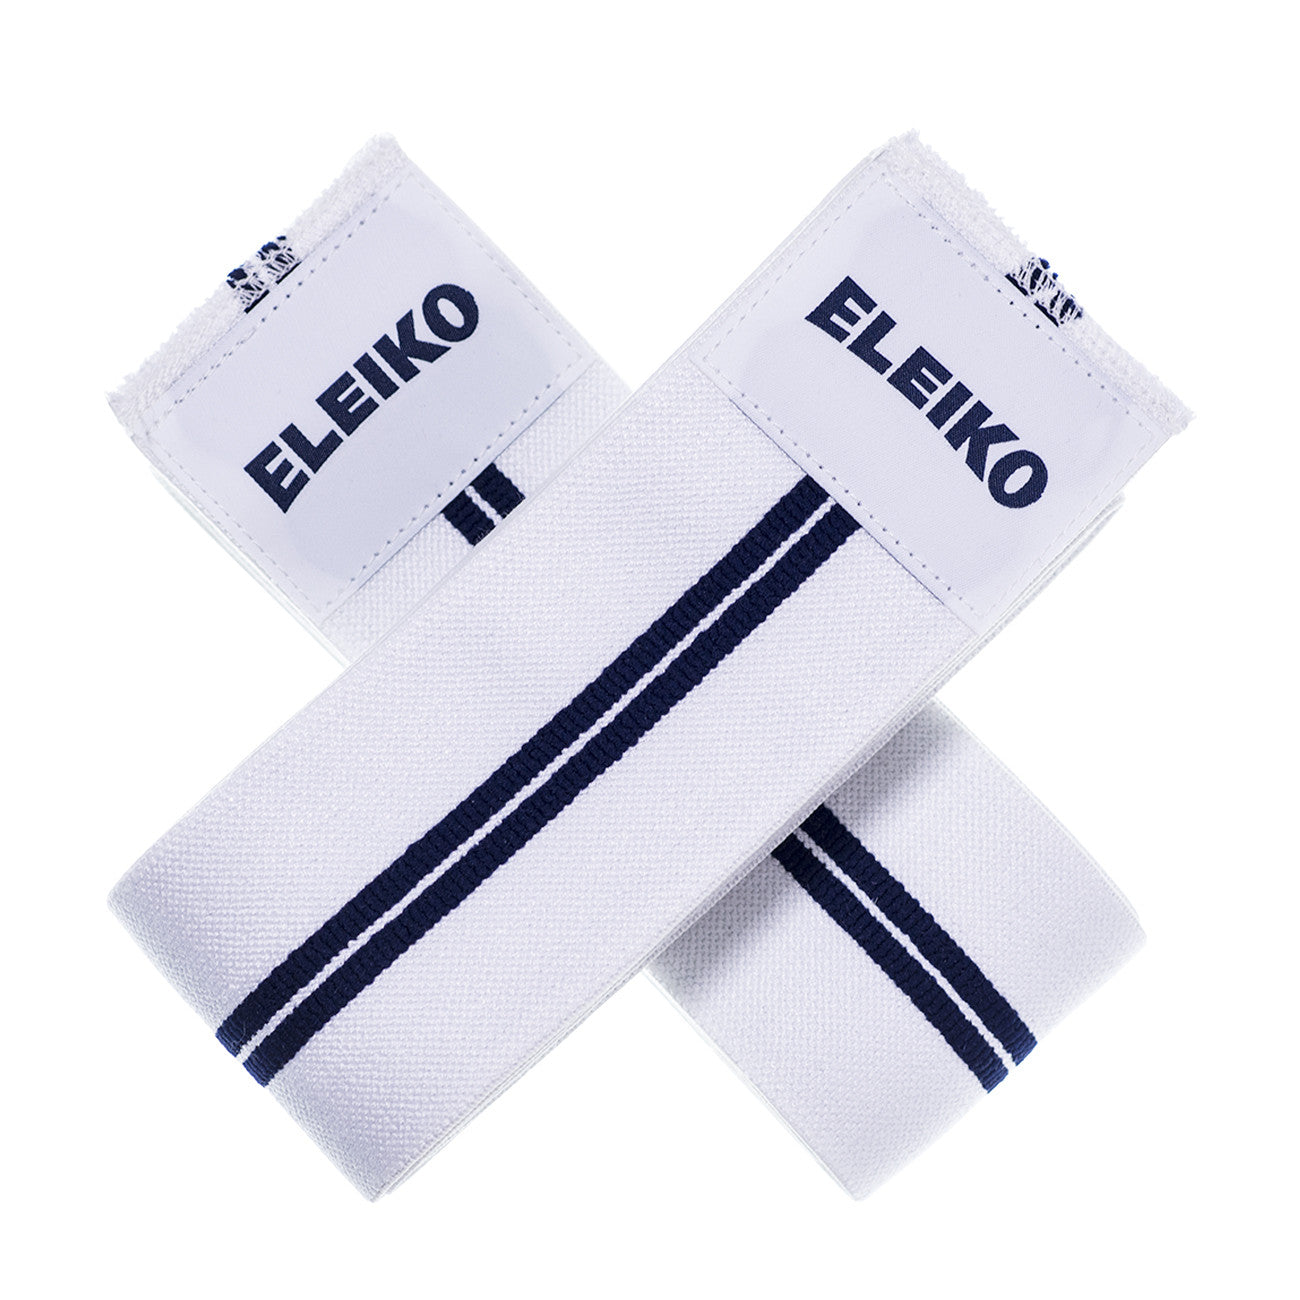 Eleiko knee wraps